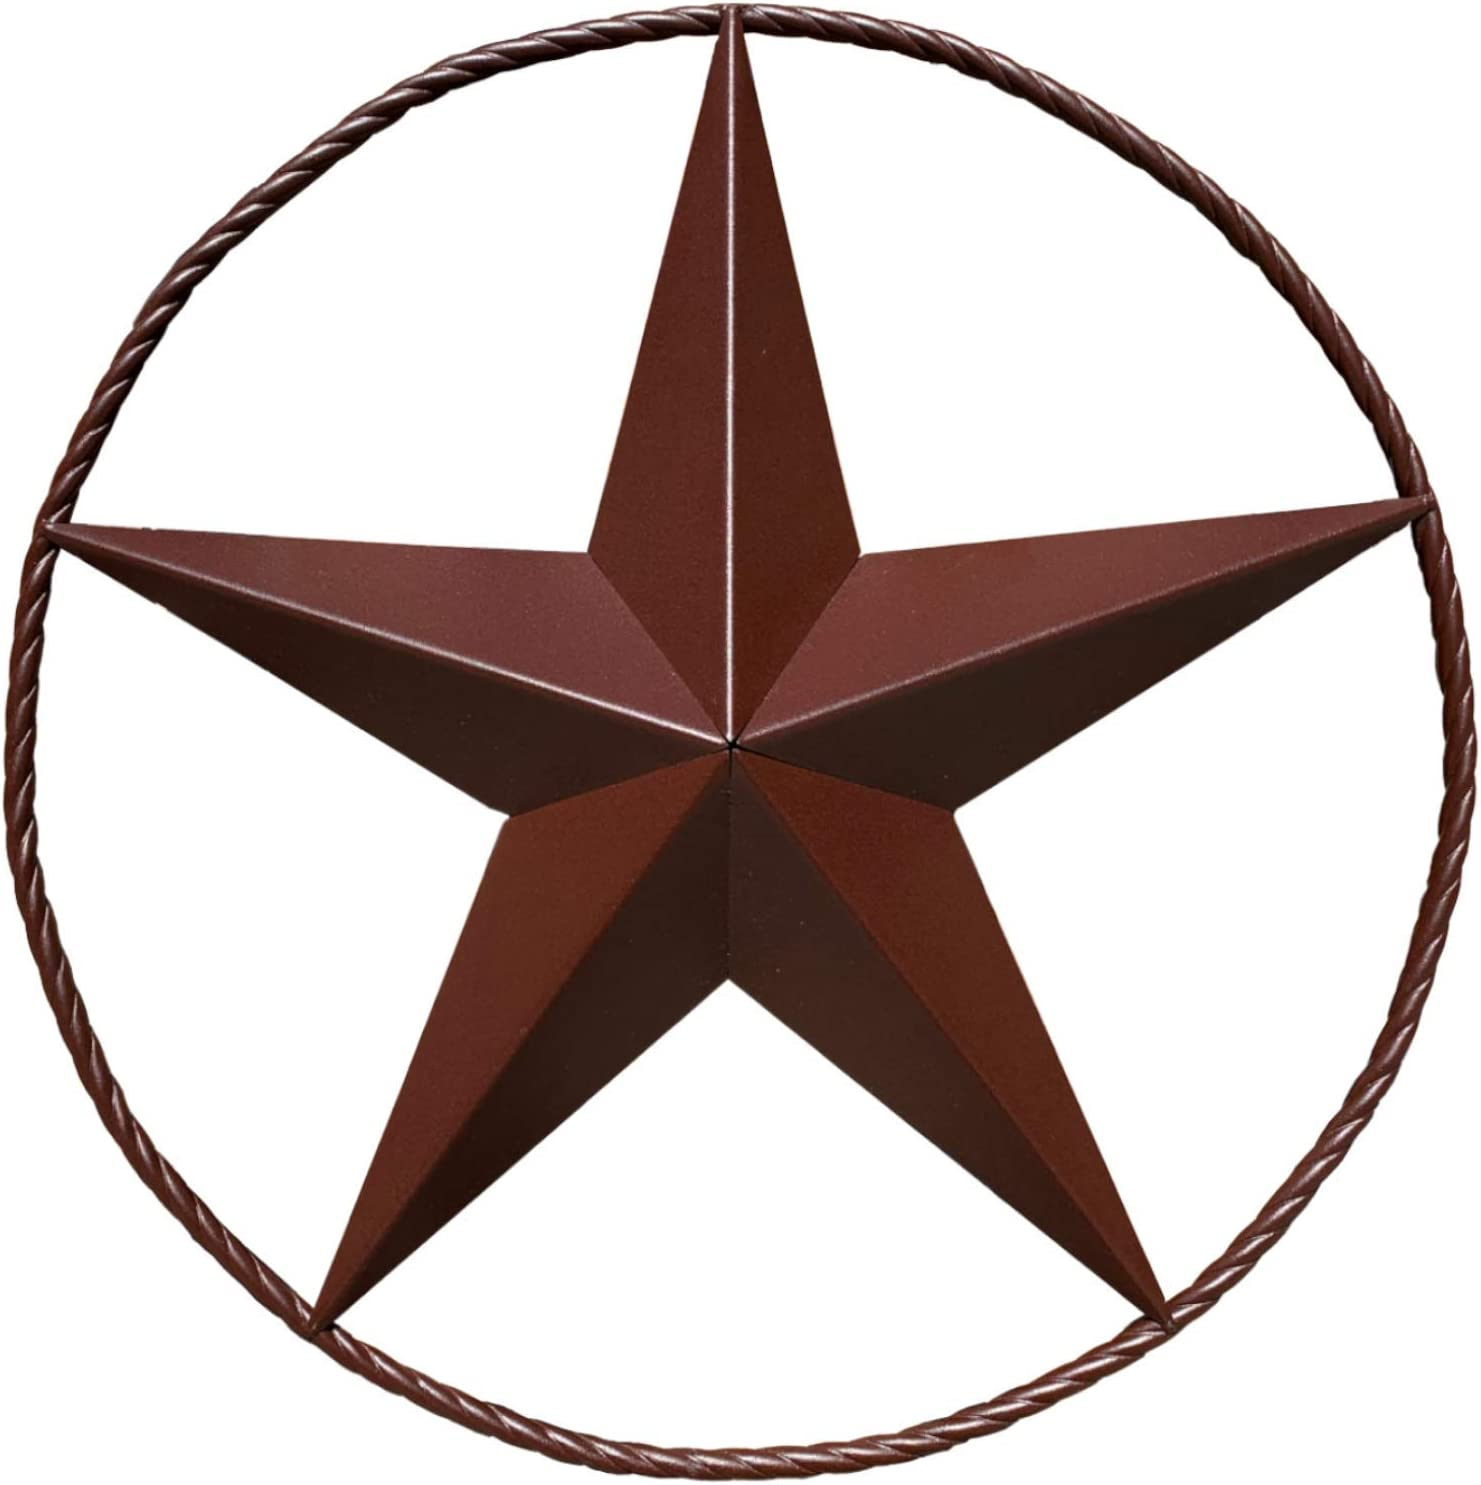 "EcoRise Barn Star - Metal Stars for Outside Texas Stars Art Rustic Vintage Western Country Home Farmhouse Wall Decor (36"")"